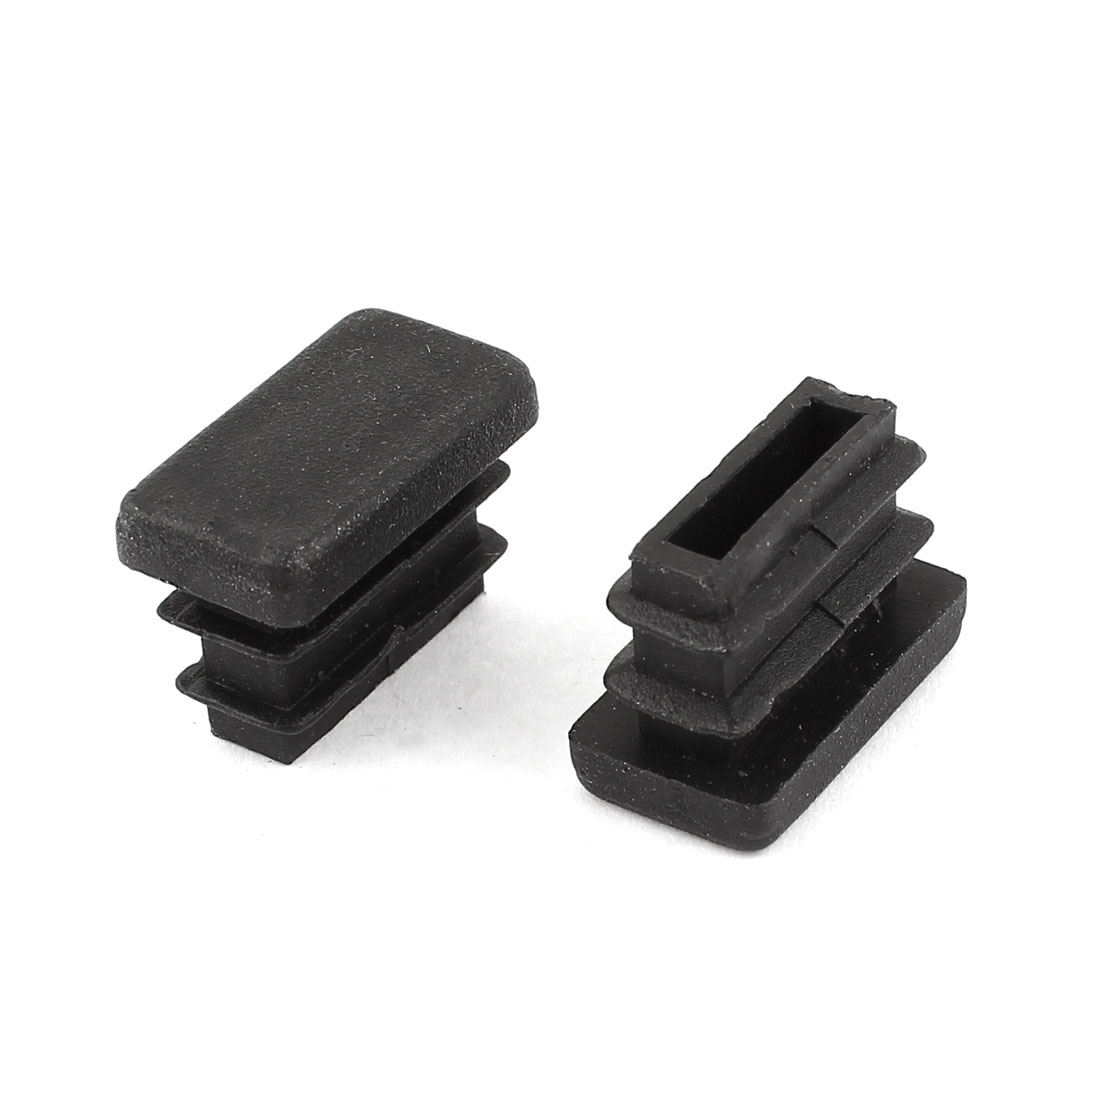 2 Pieces Black Plastic Rectangle Blanking End Caps Tubing Tube Inserts 10mm x 20mm